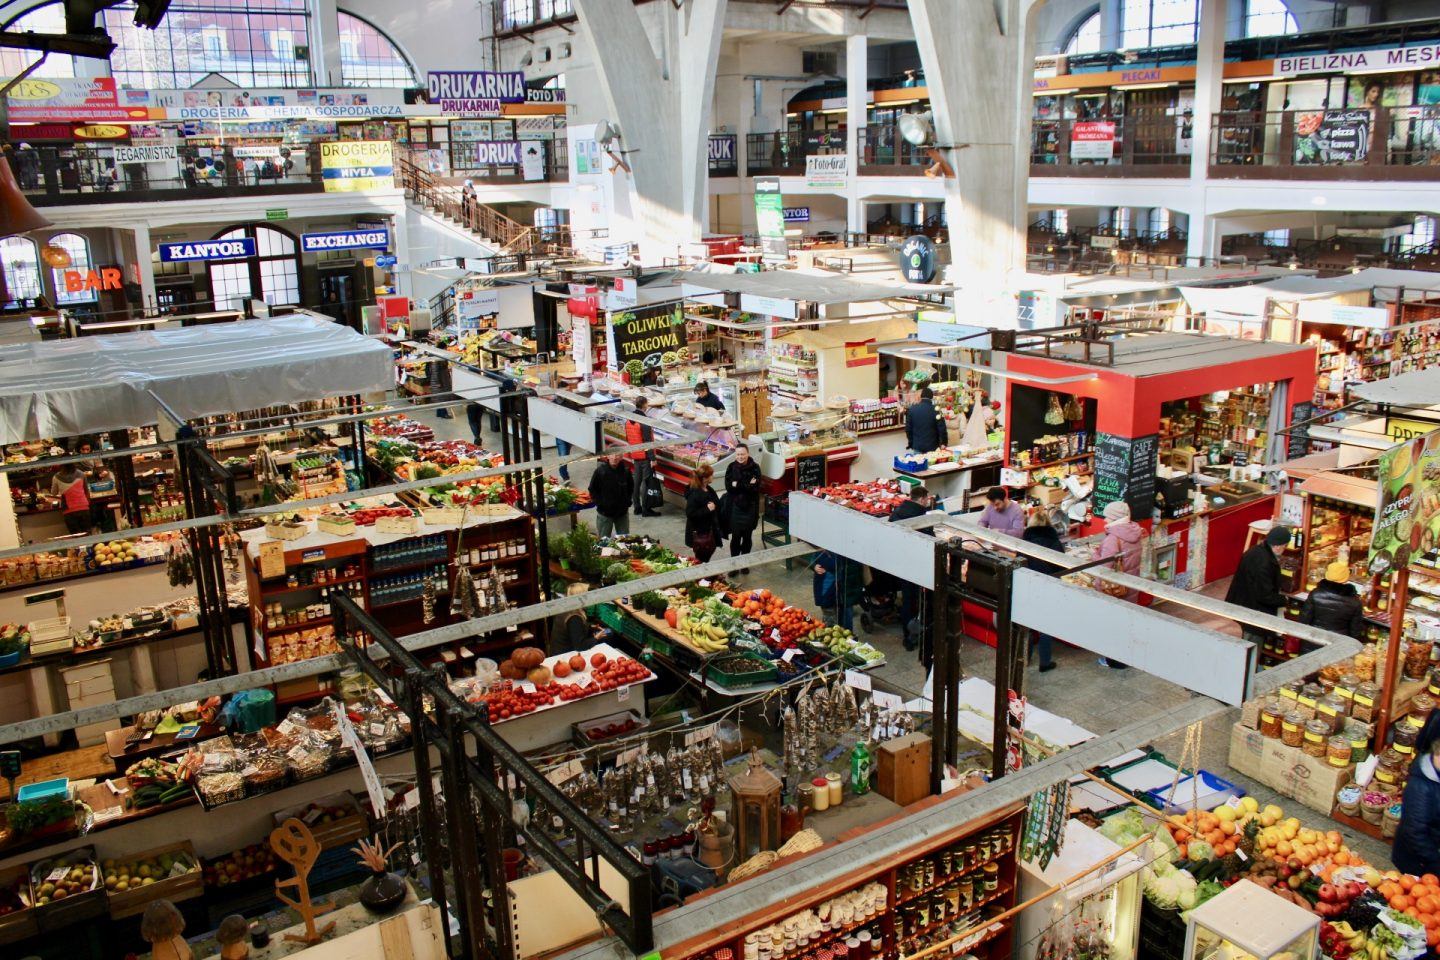 things to do in Wrocław: a shot of the market hall taken from the balcony